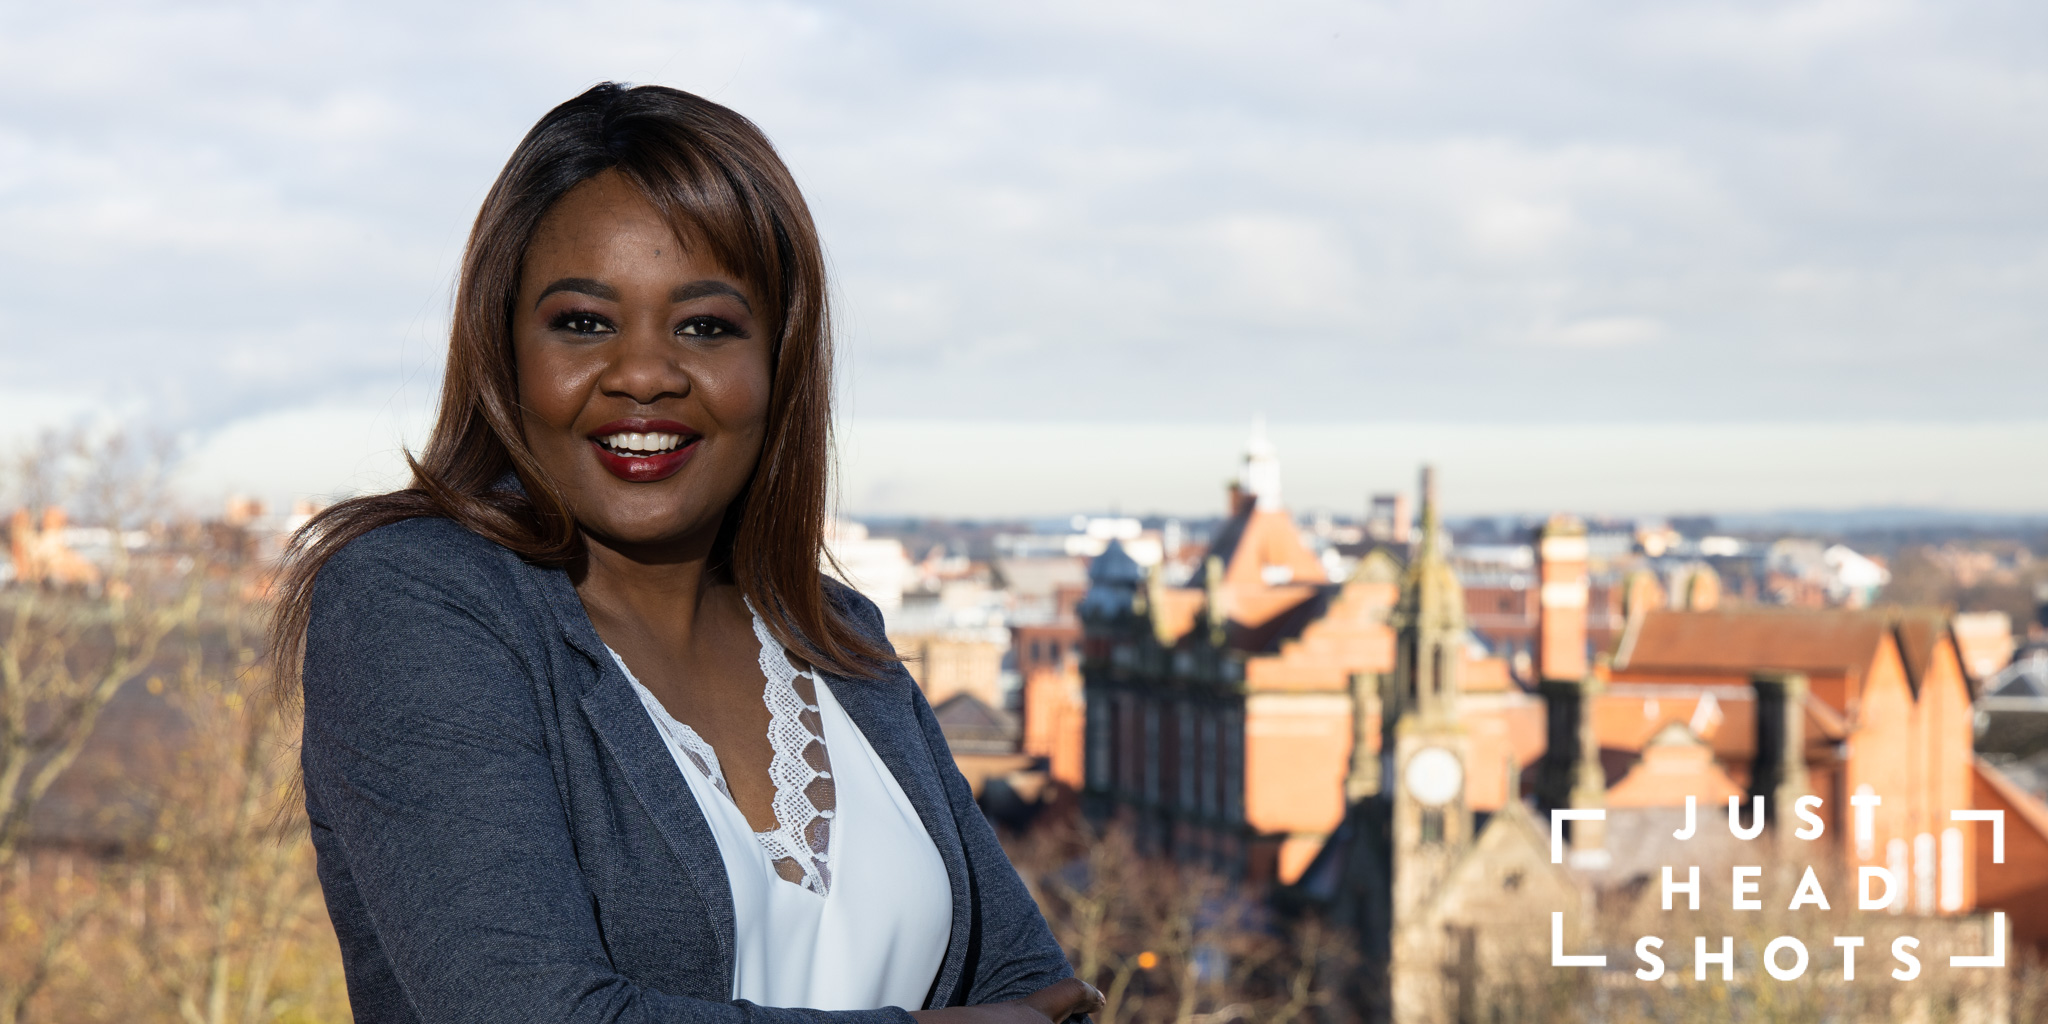 Upper body business portrait of a black woman photographed in a wide format as a banner for website, with flash and natural light with Chester city centre in the background.